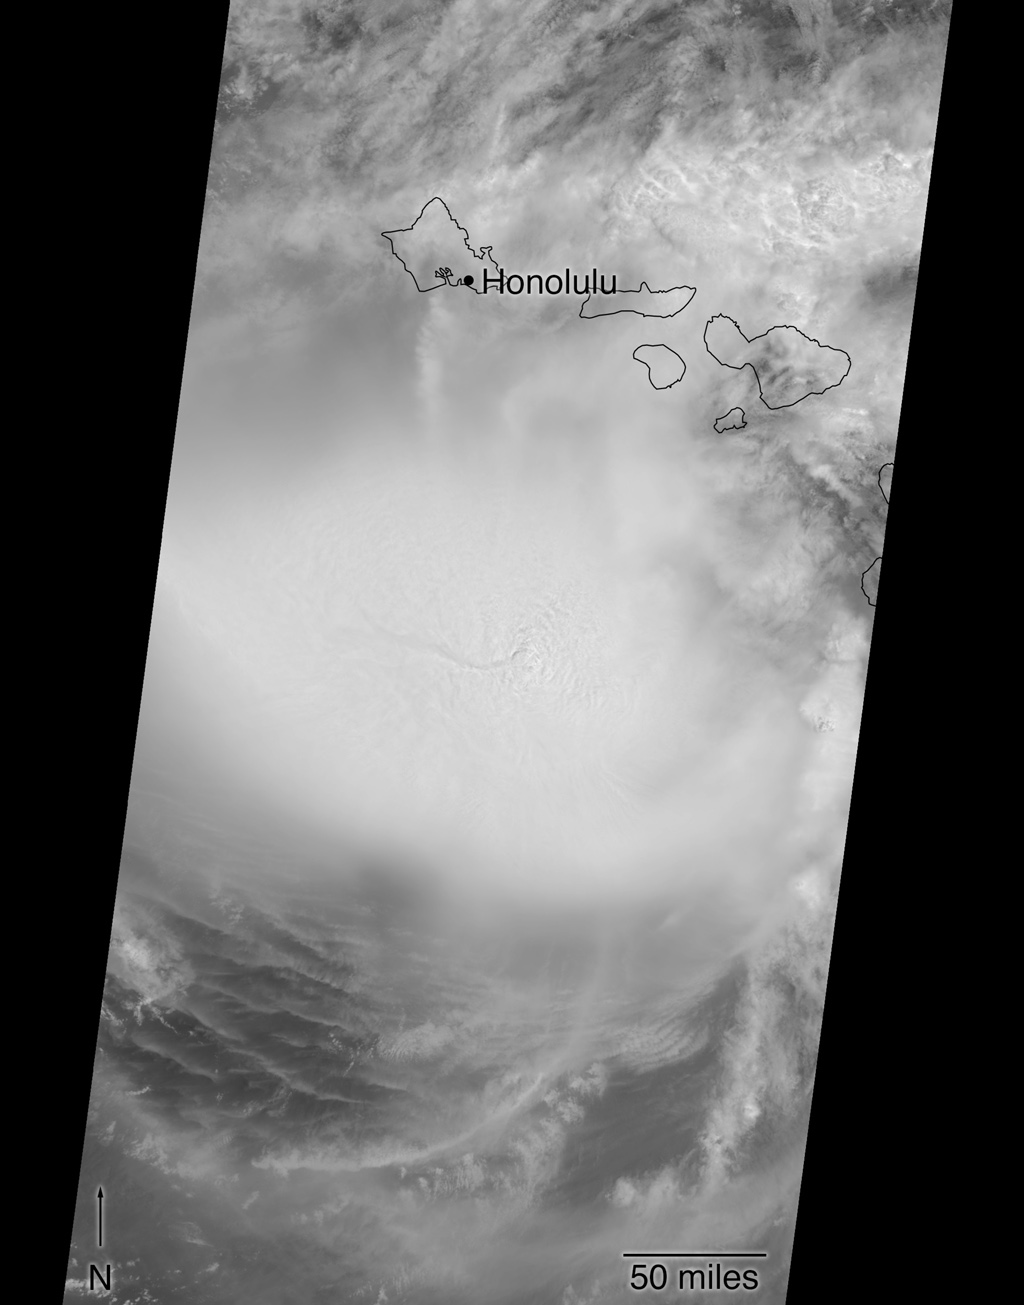 Hurricane Lane as viewed by the MISR instrument onboard NASA's Terra satellite on Aug. 24, 2018. The length of the arrows is proportional to the wind speed, while their color shows the altitude of the cloud tops in kilometers.